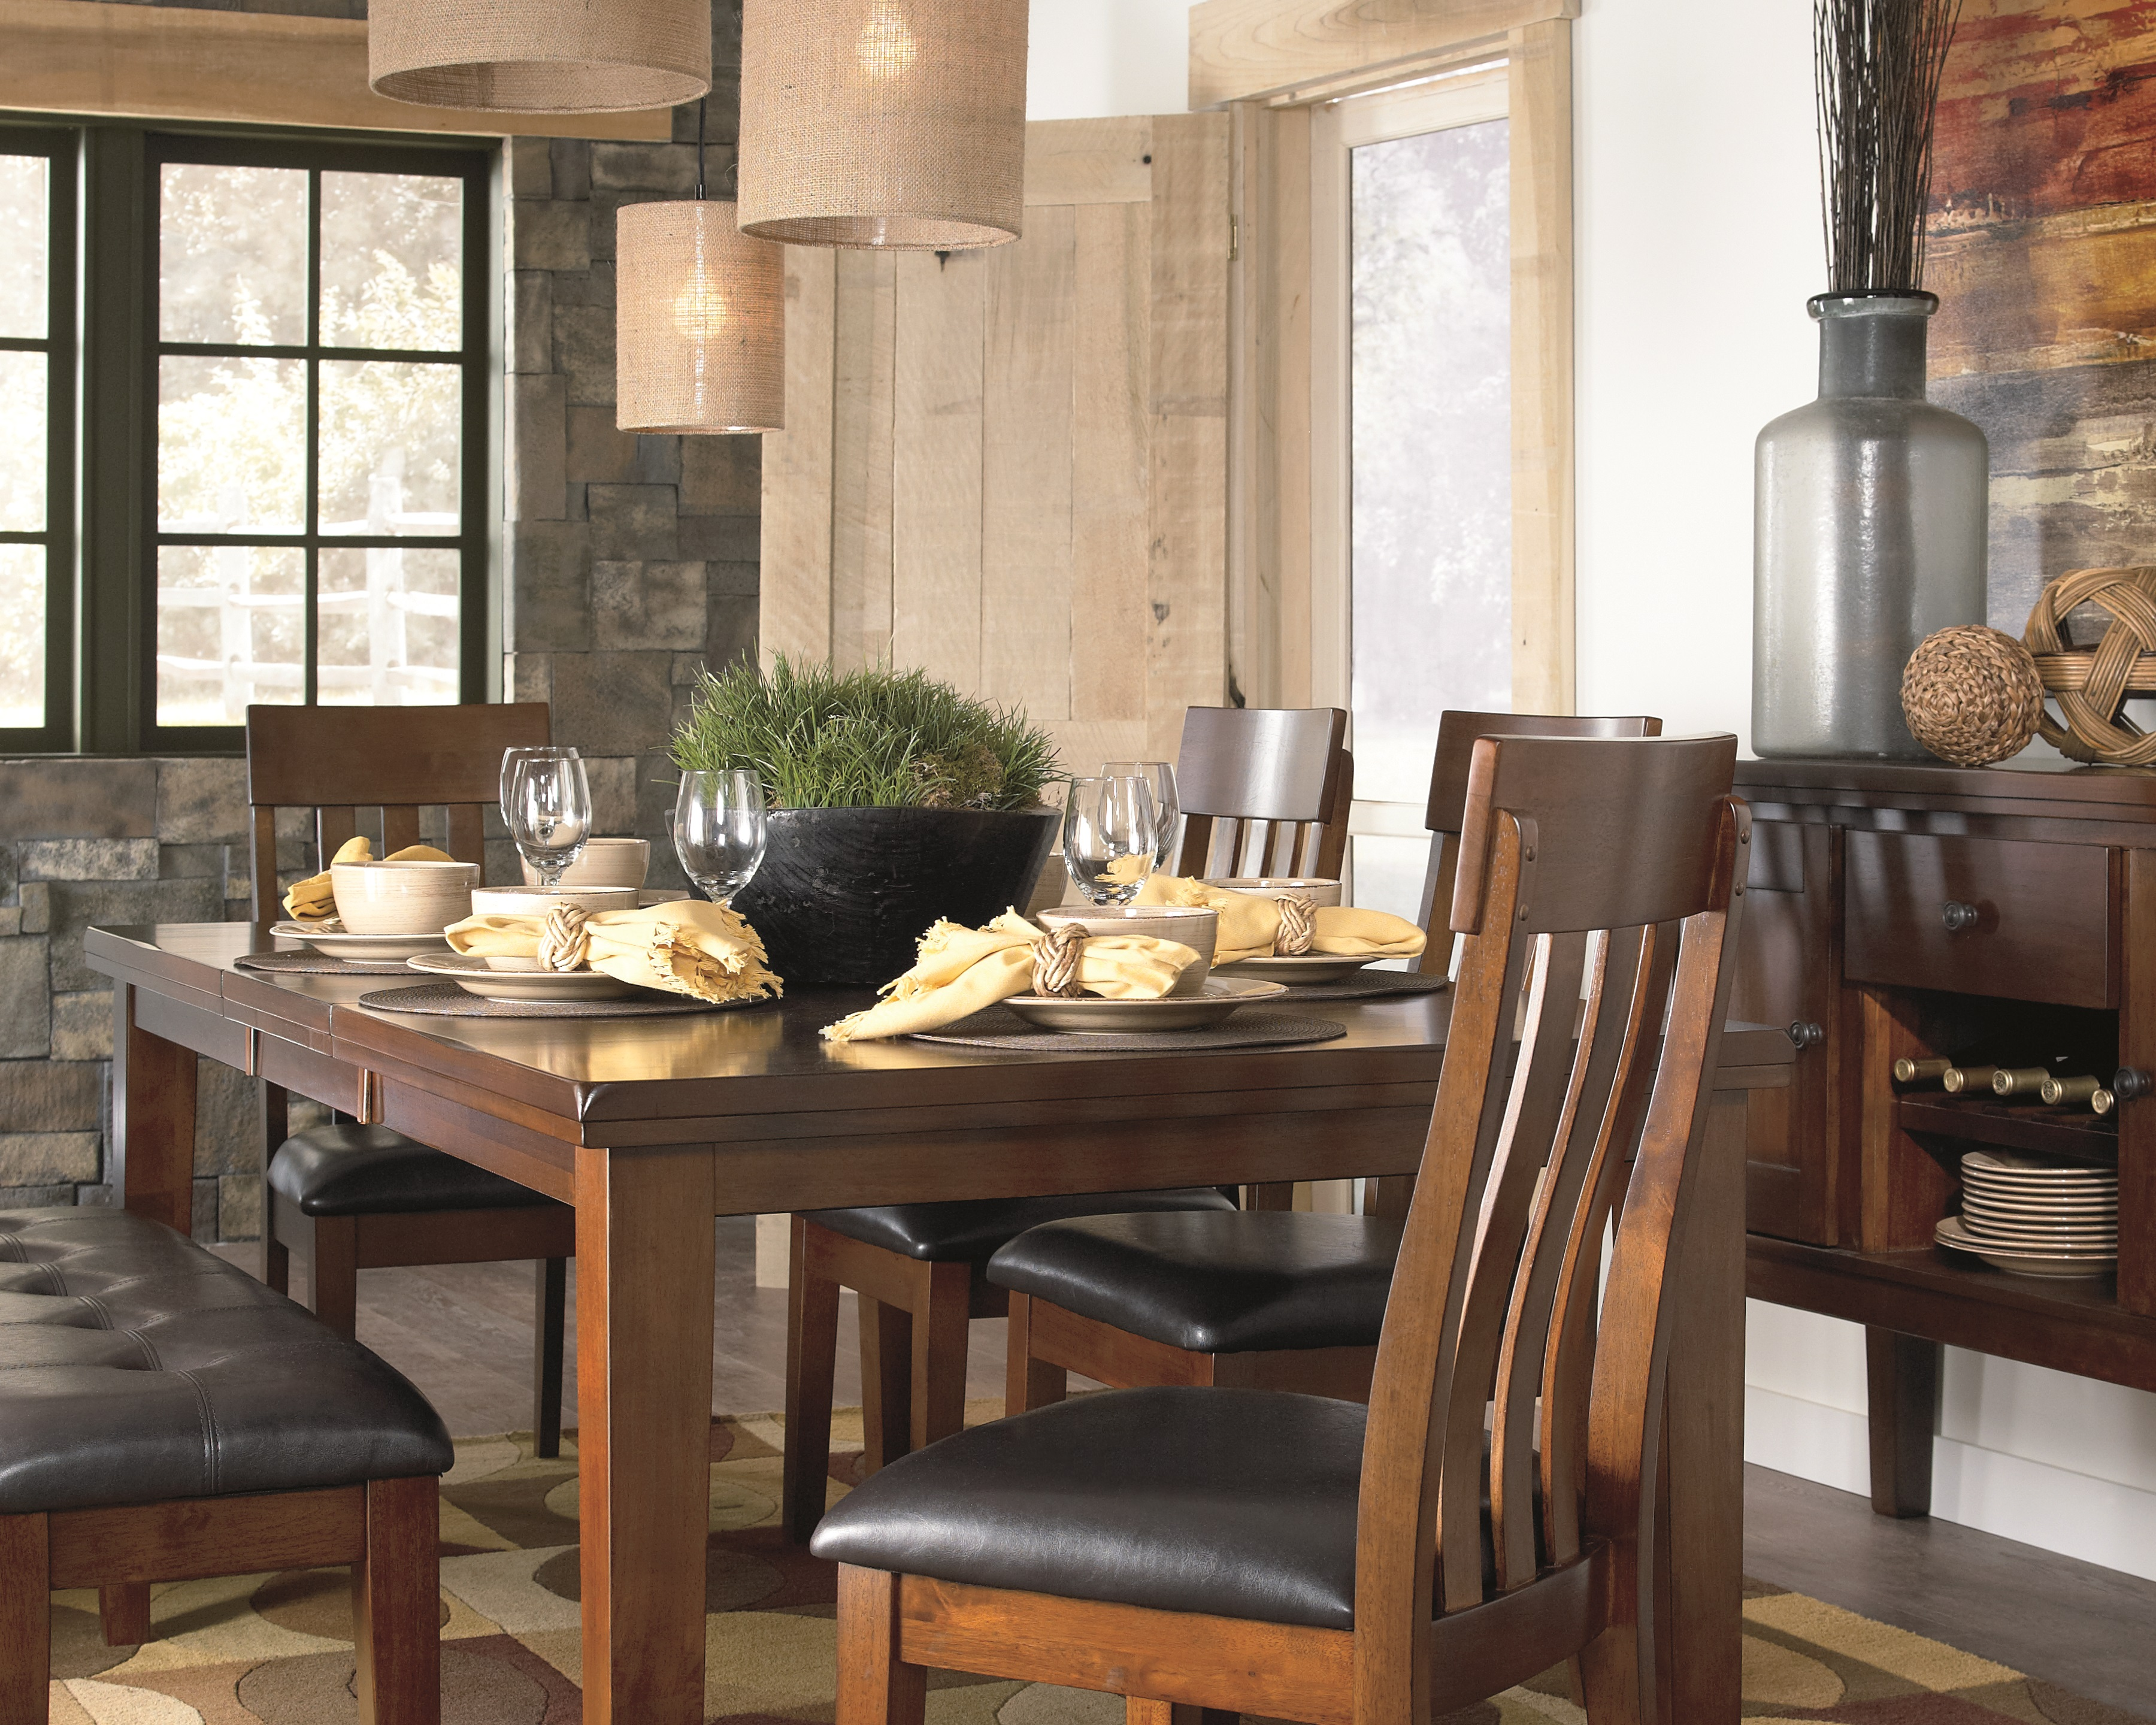 Strumfeld warm brown dining table with upholstered seating and serving table